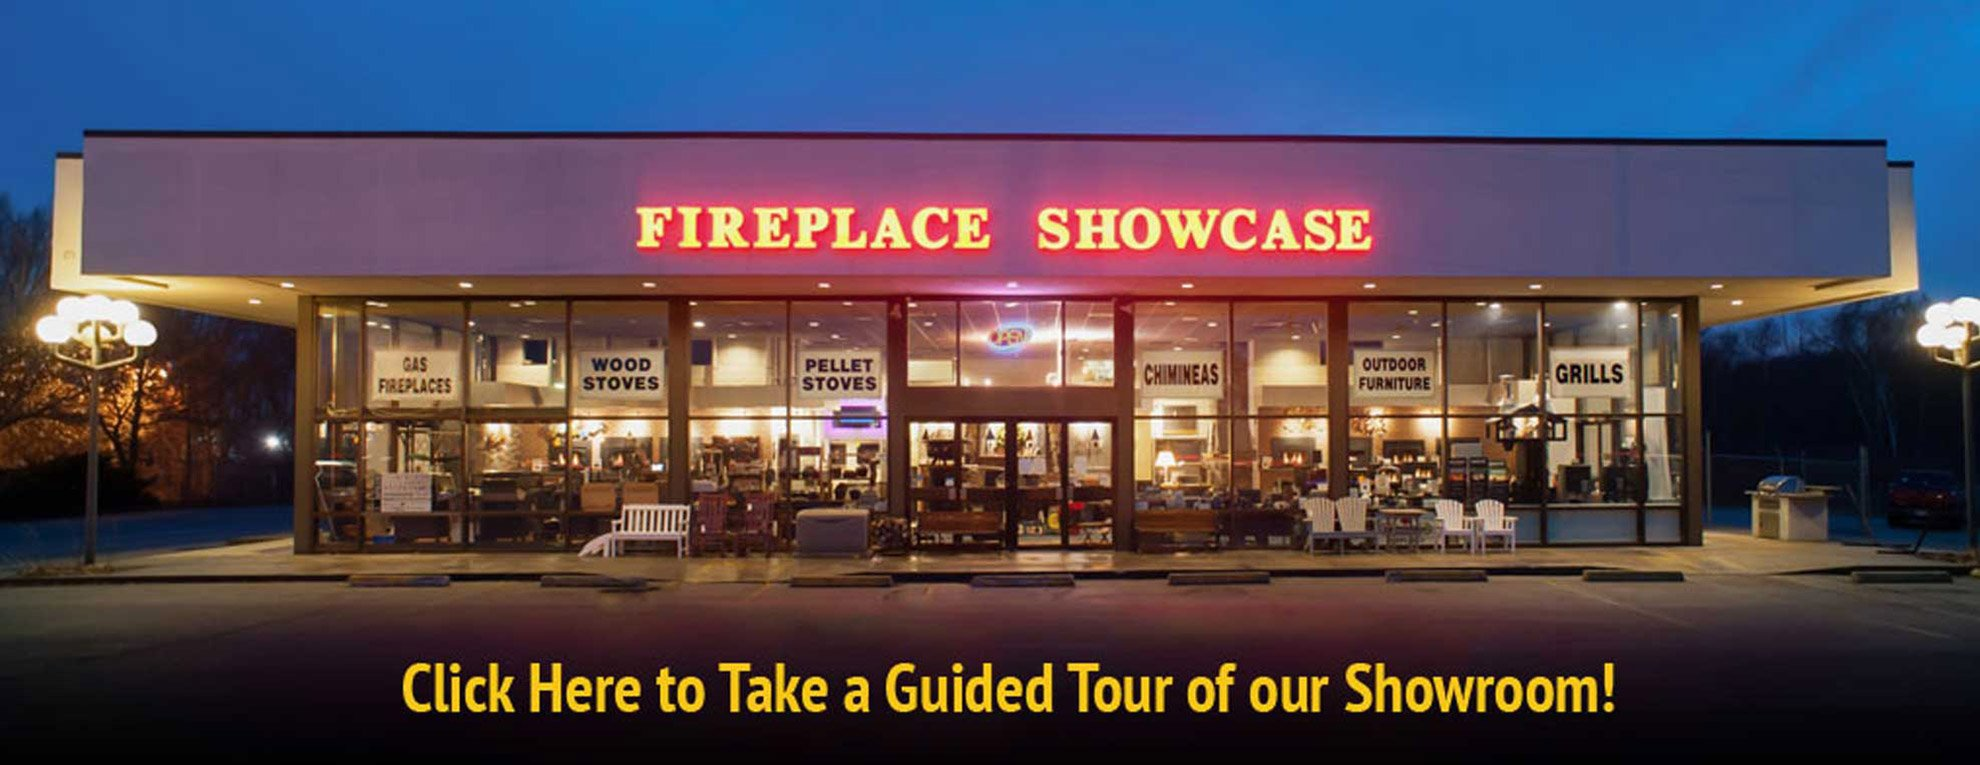 Fireplaces Store MA RI Pellet Wood Stoves Fireplace Inserts Swing Sets Sheds Gas Grills